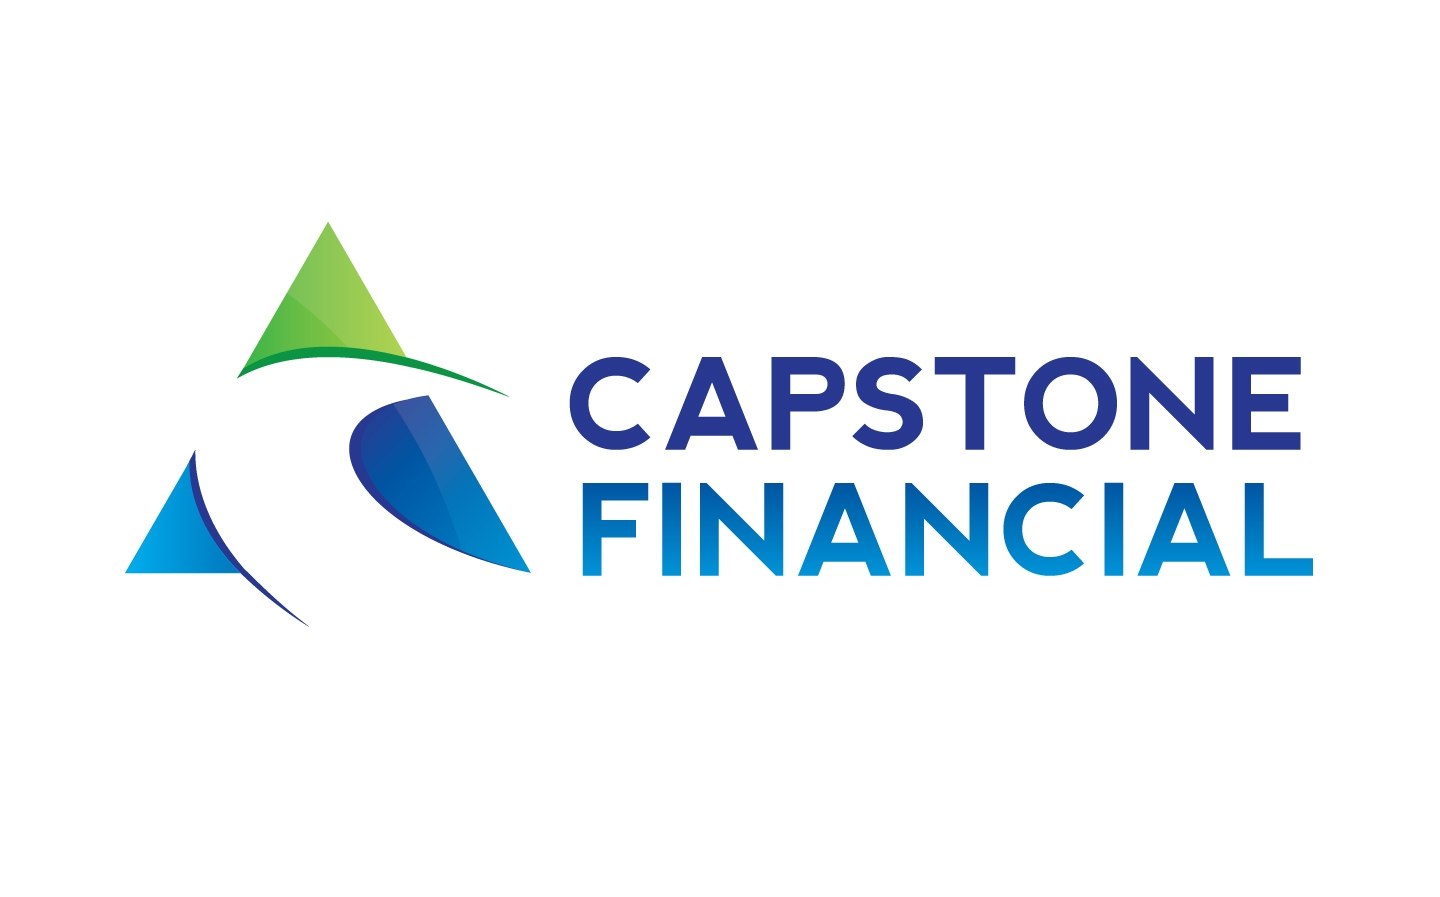 finance capstone Here is the best resource for homework help with fin 5502 : finance capstone at nova southeastern university find fin5502 study guides, notes, and practice.